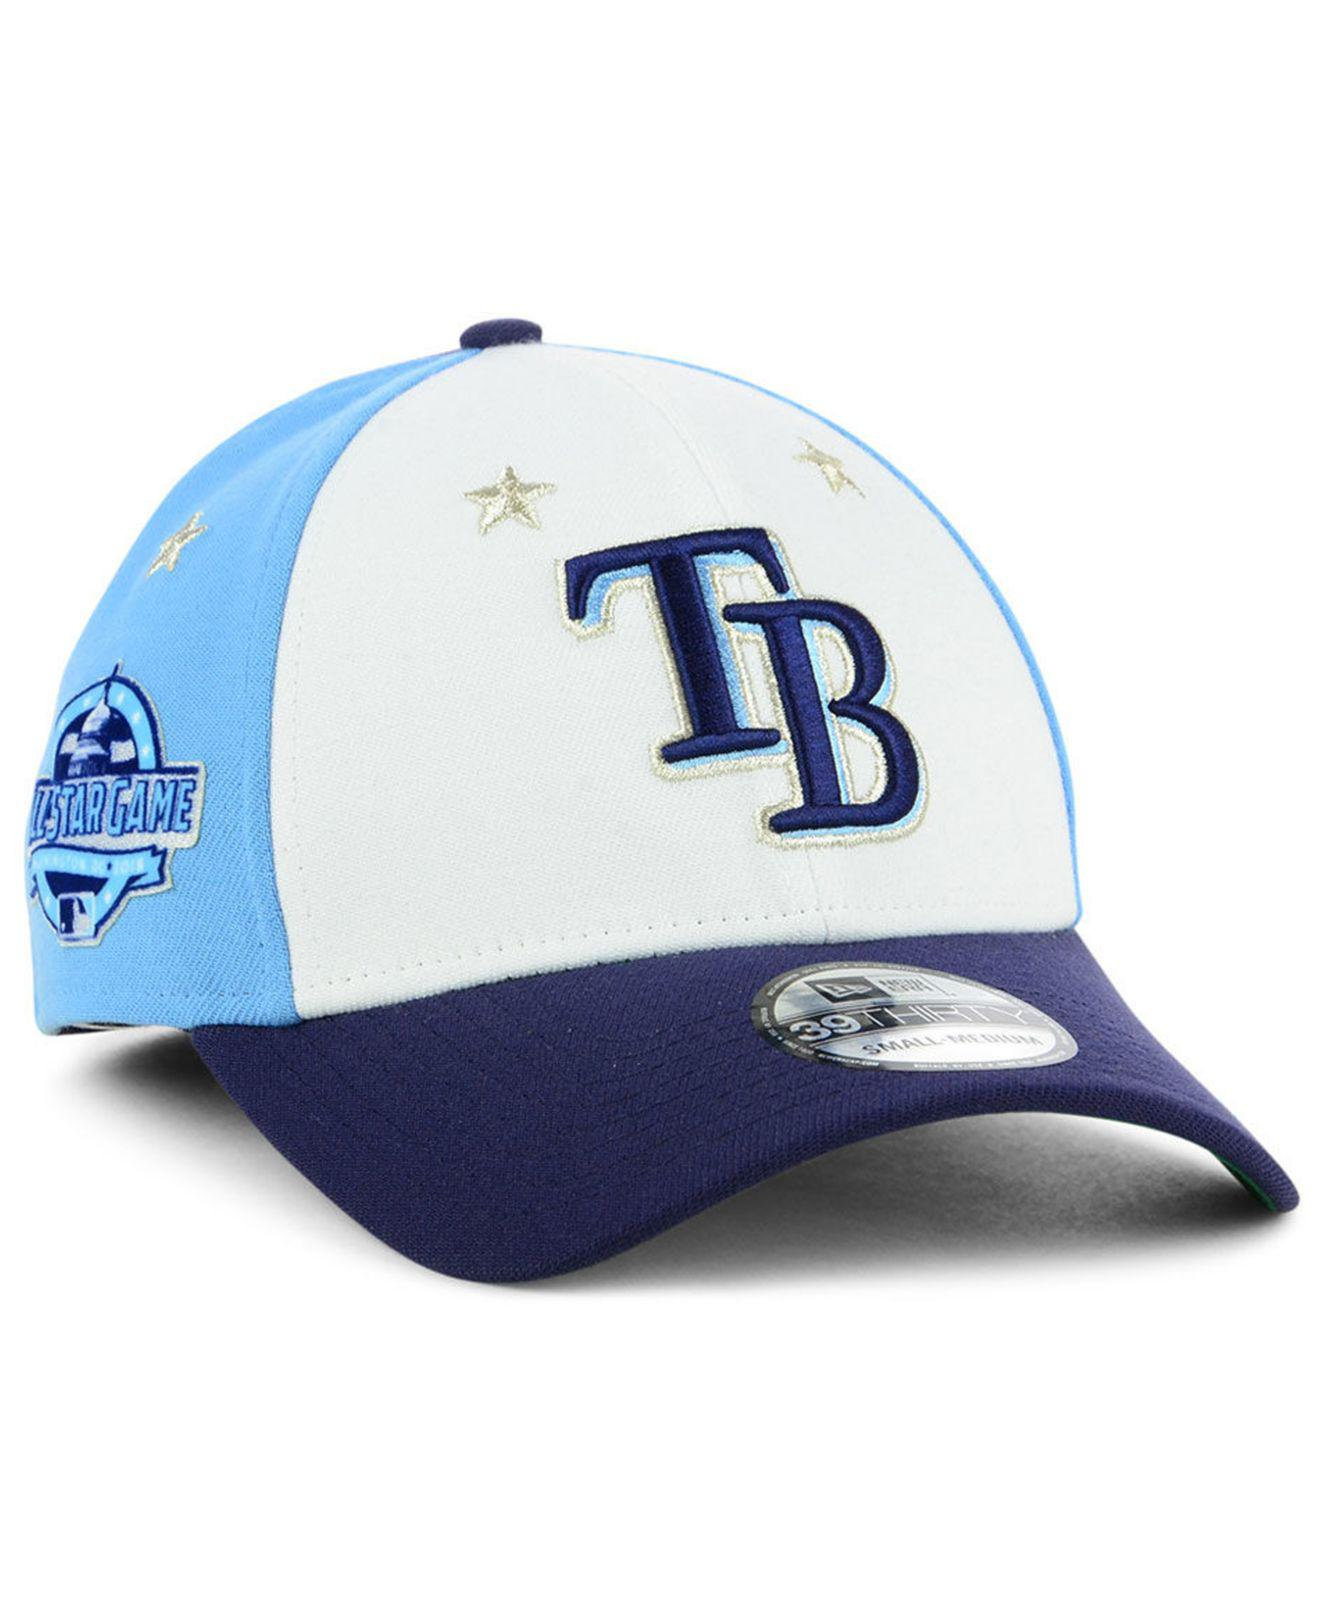 on sale 8bbf7 bd370 ... cheapest ktz. mens blue tampa bay rays all star game 39thirty stretch  fitted cap 2018